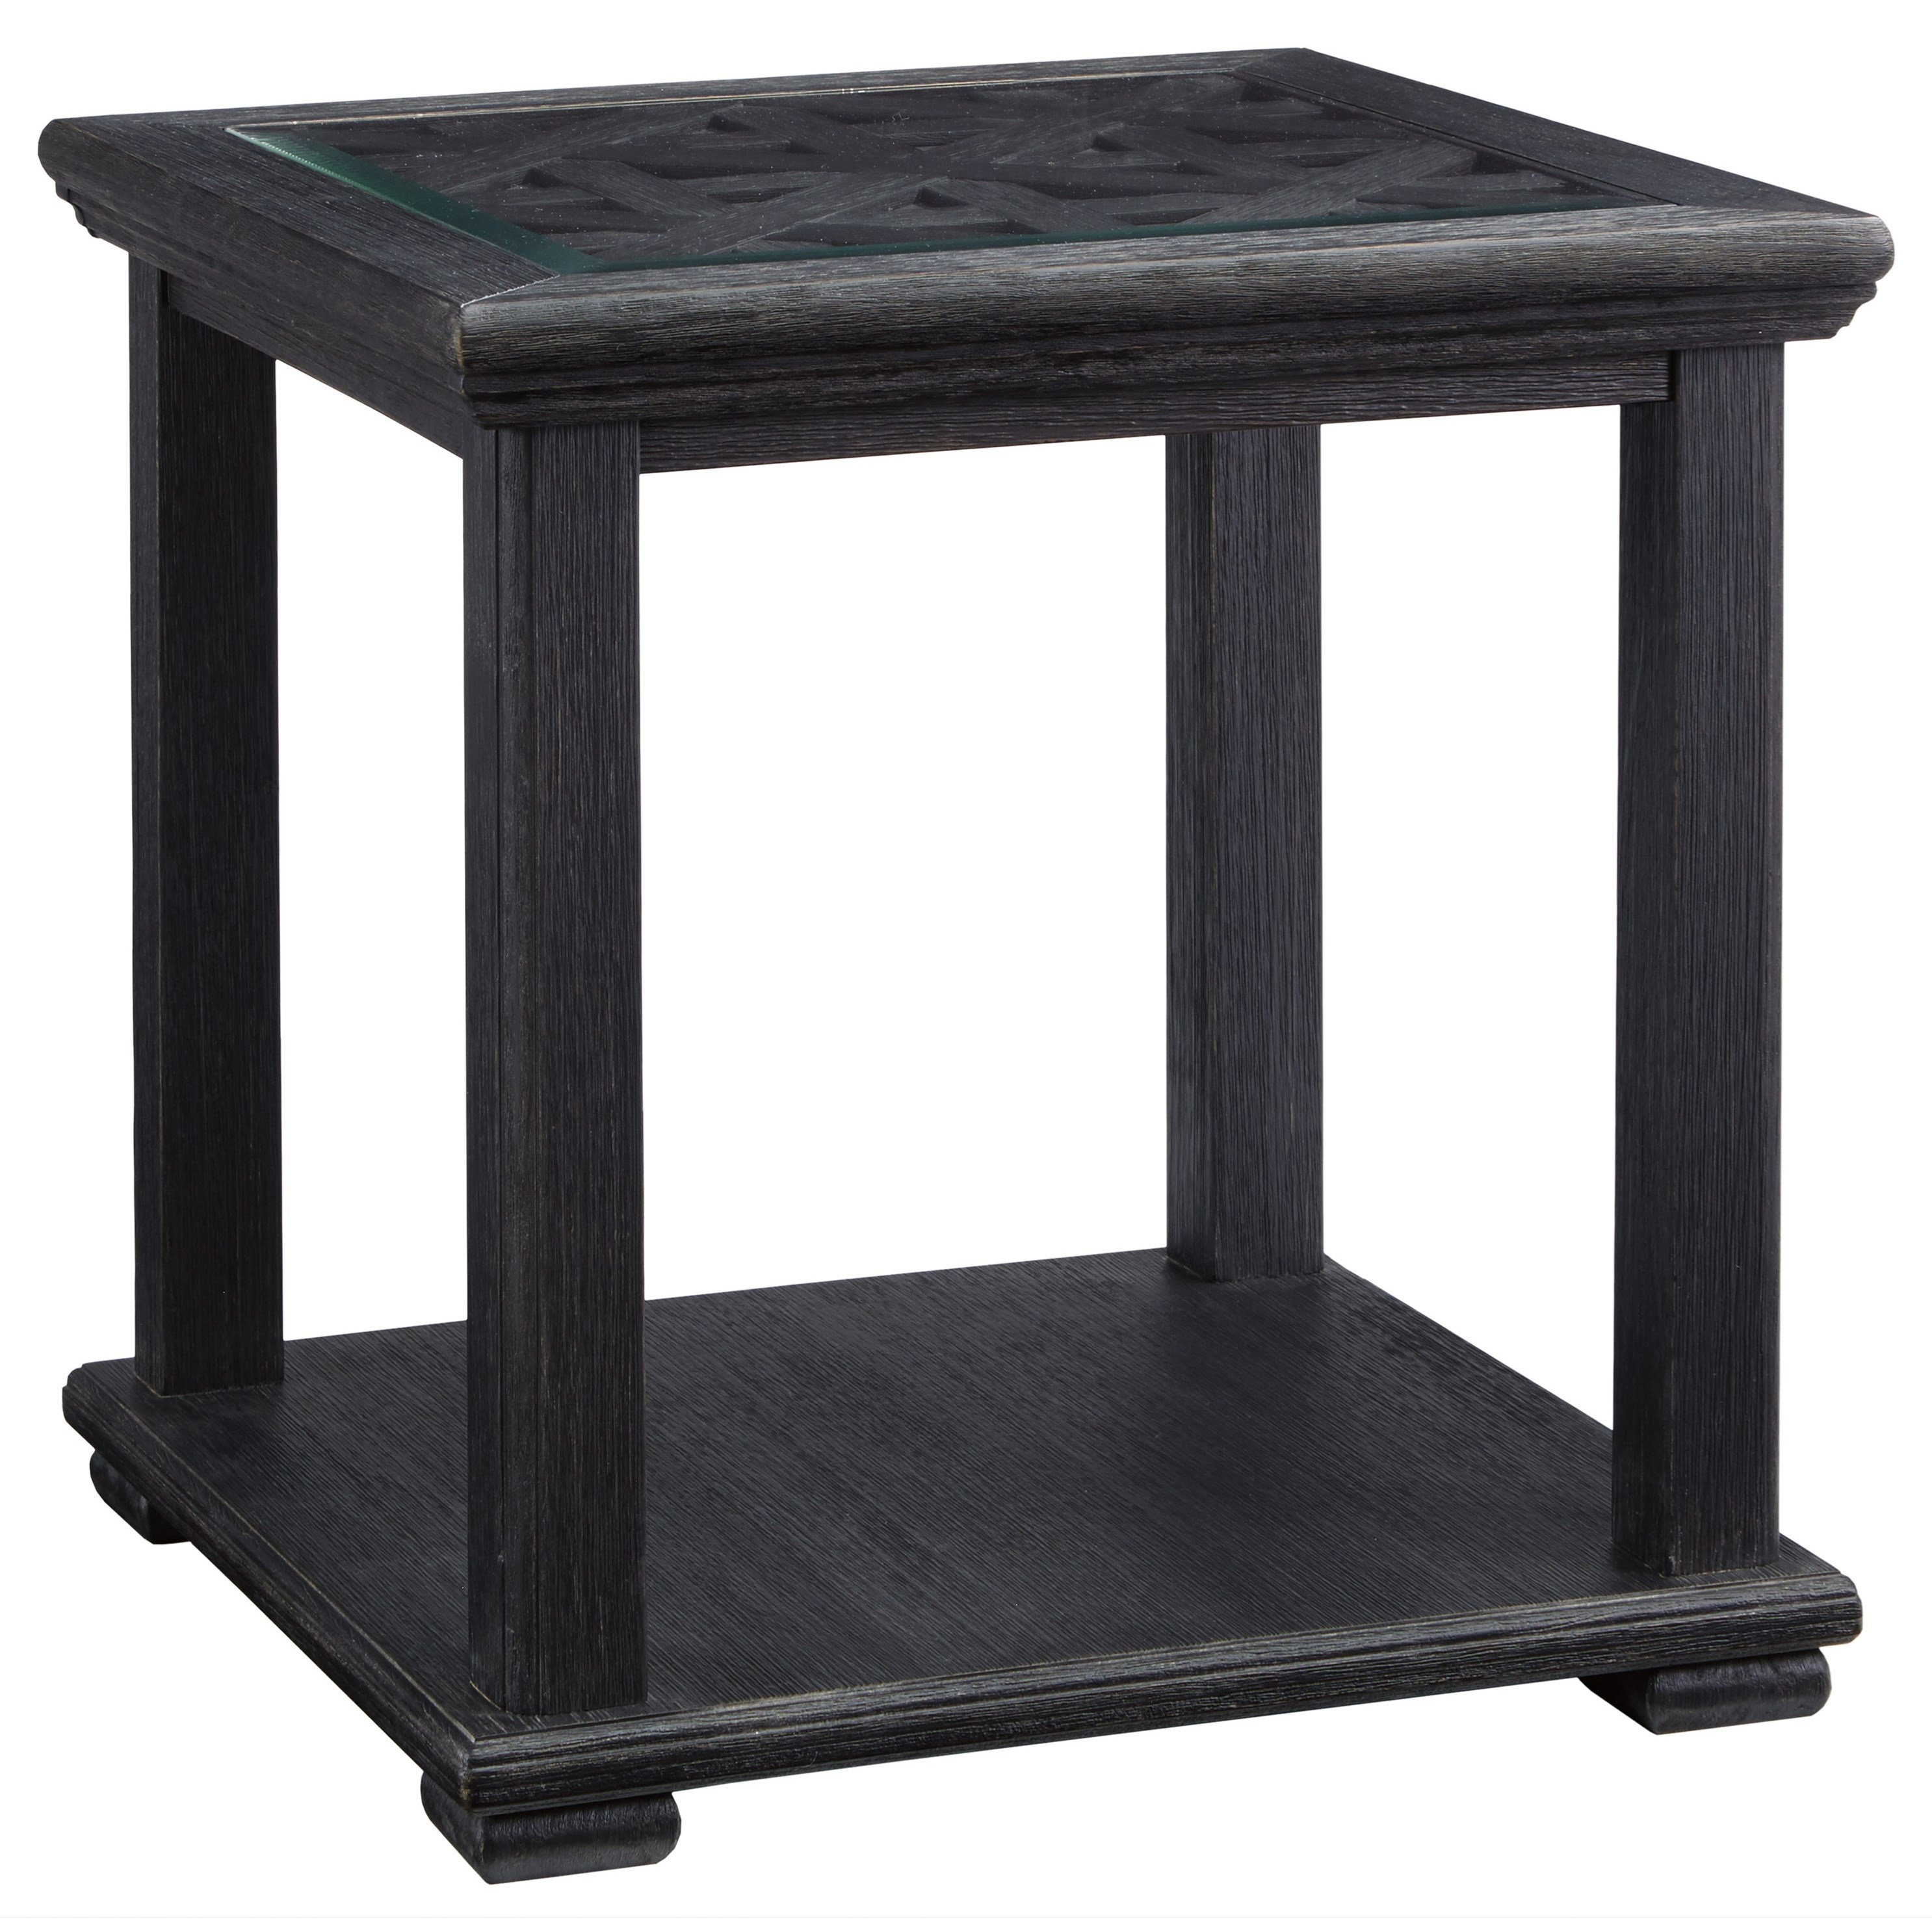 Signature Design by Ashley Tyler Creek Square End Table - Item Number: T635-2